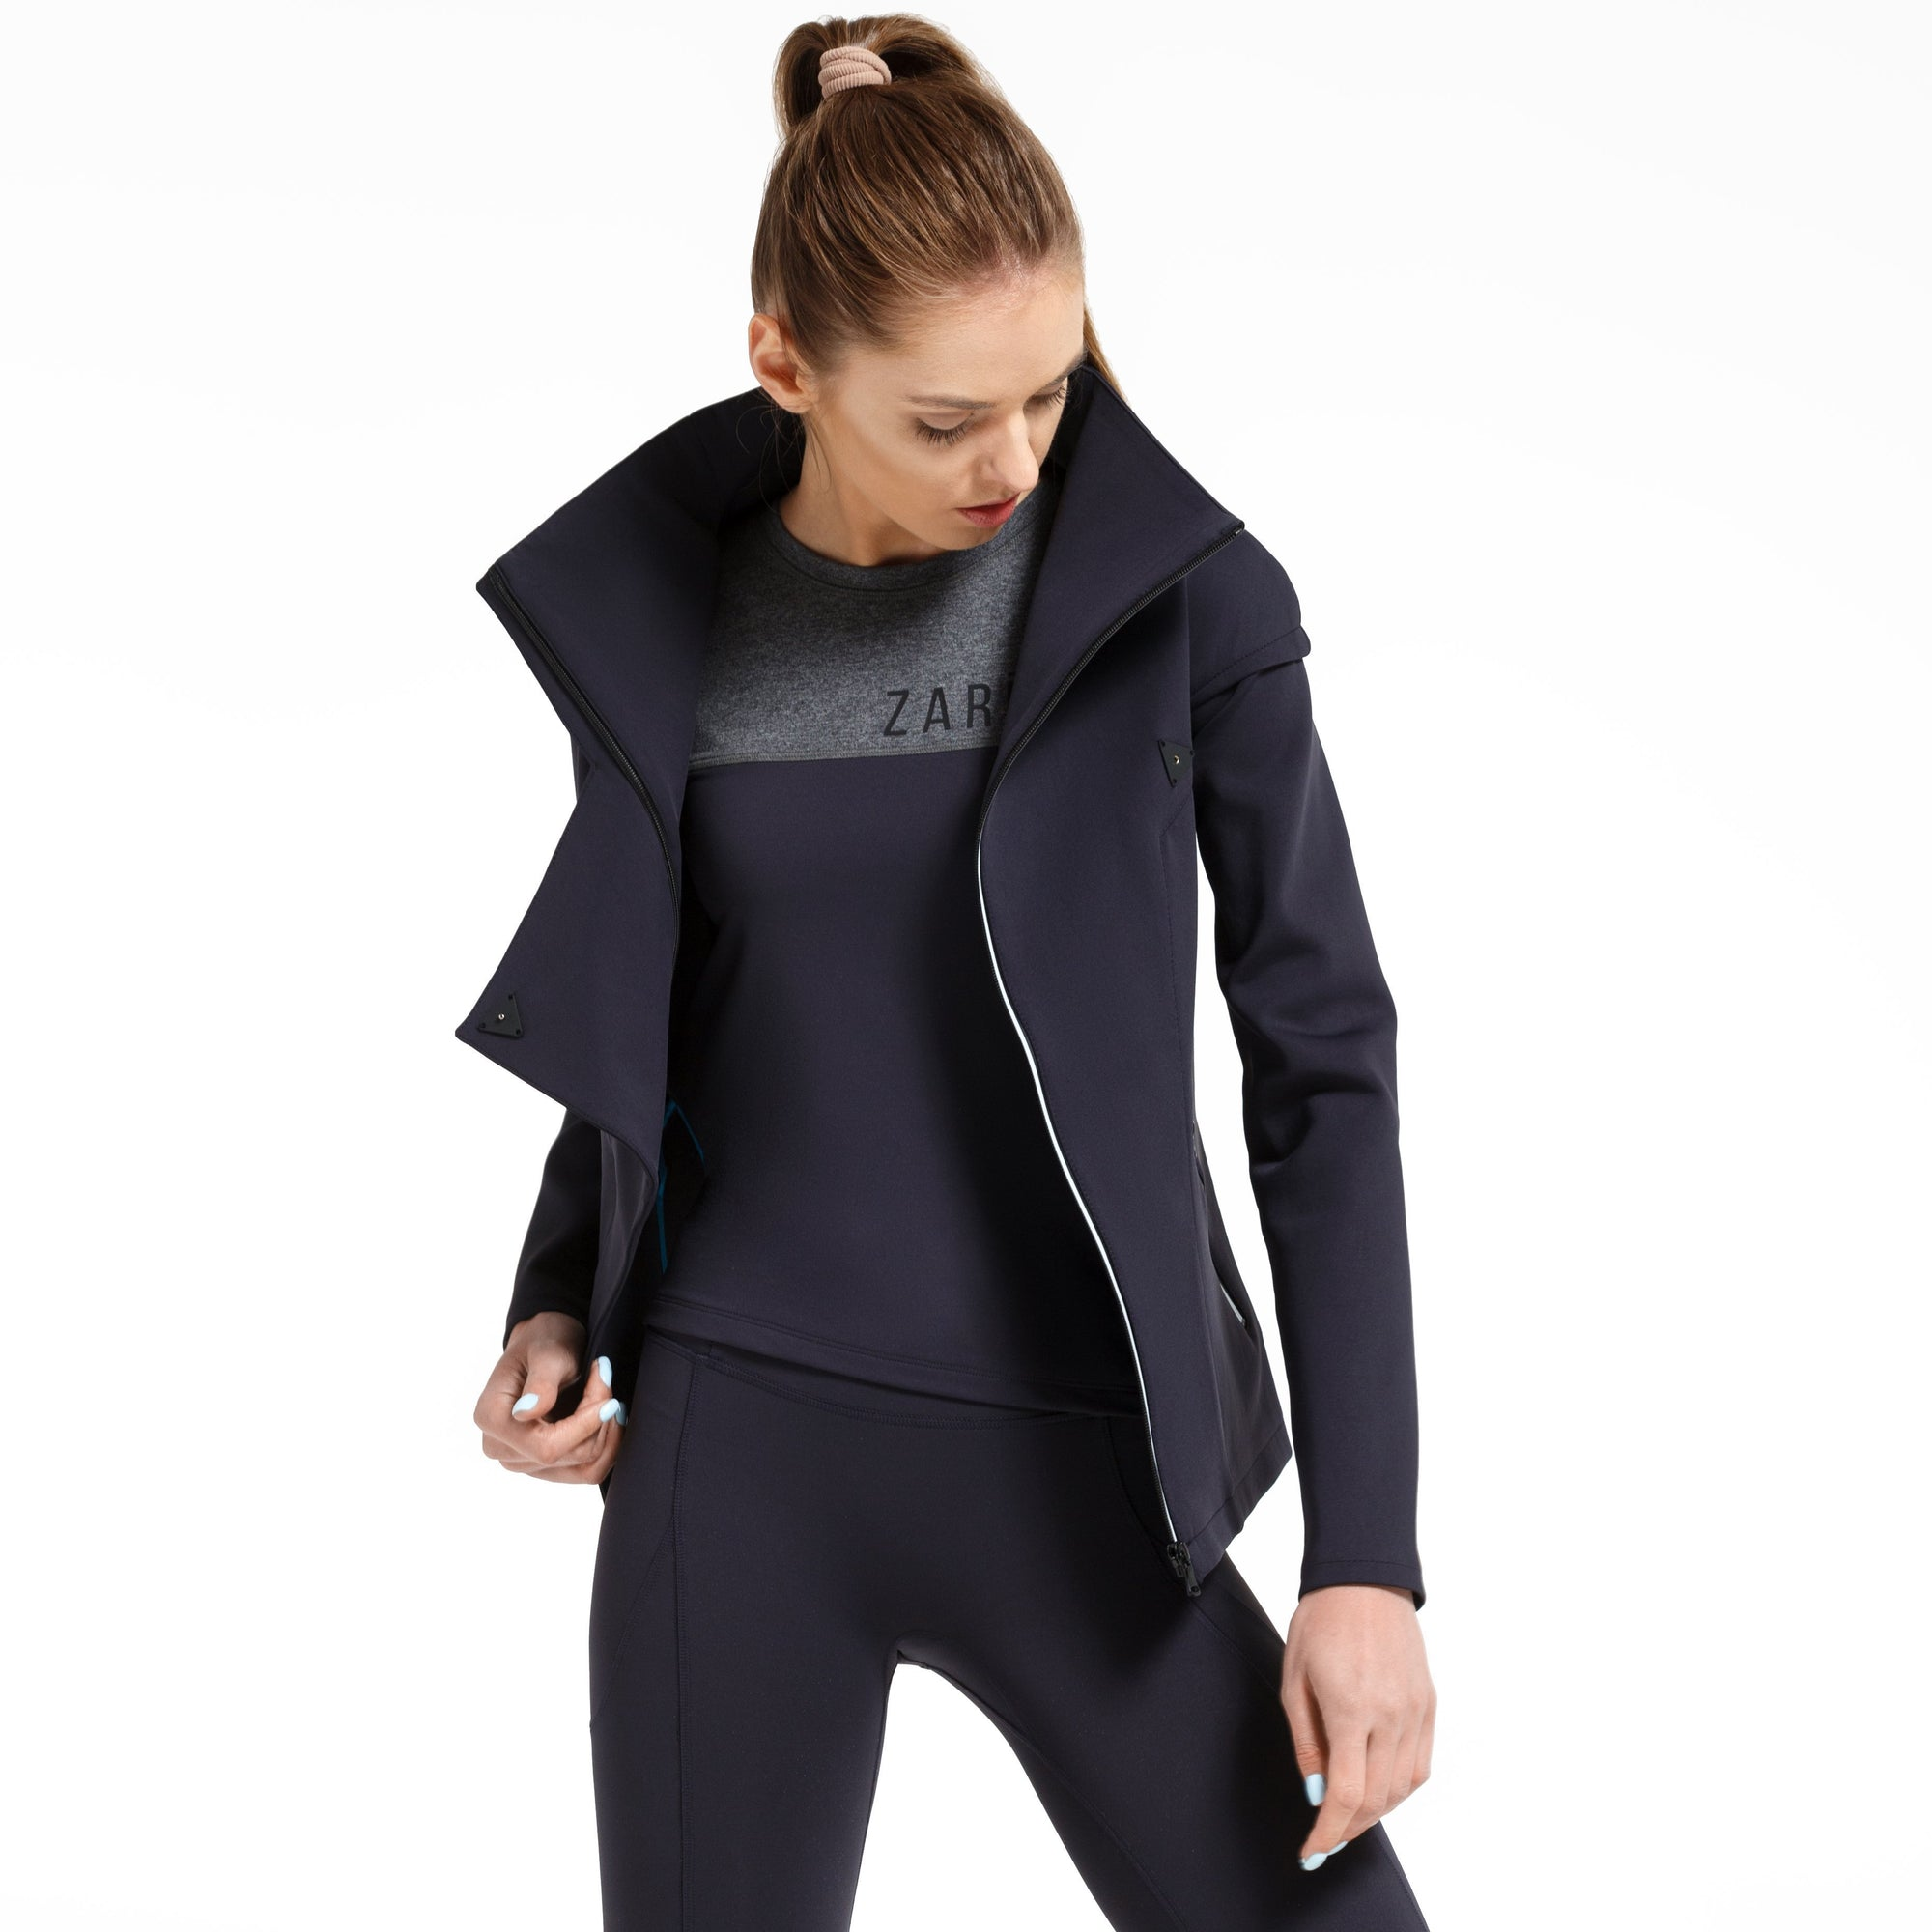 Zarely jacket-women Melissa Neoprene Jacket